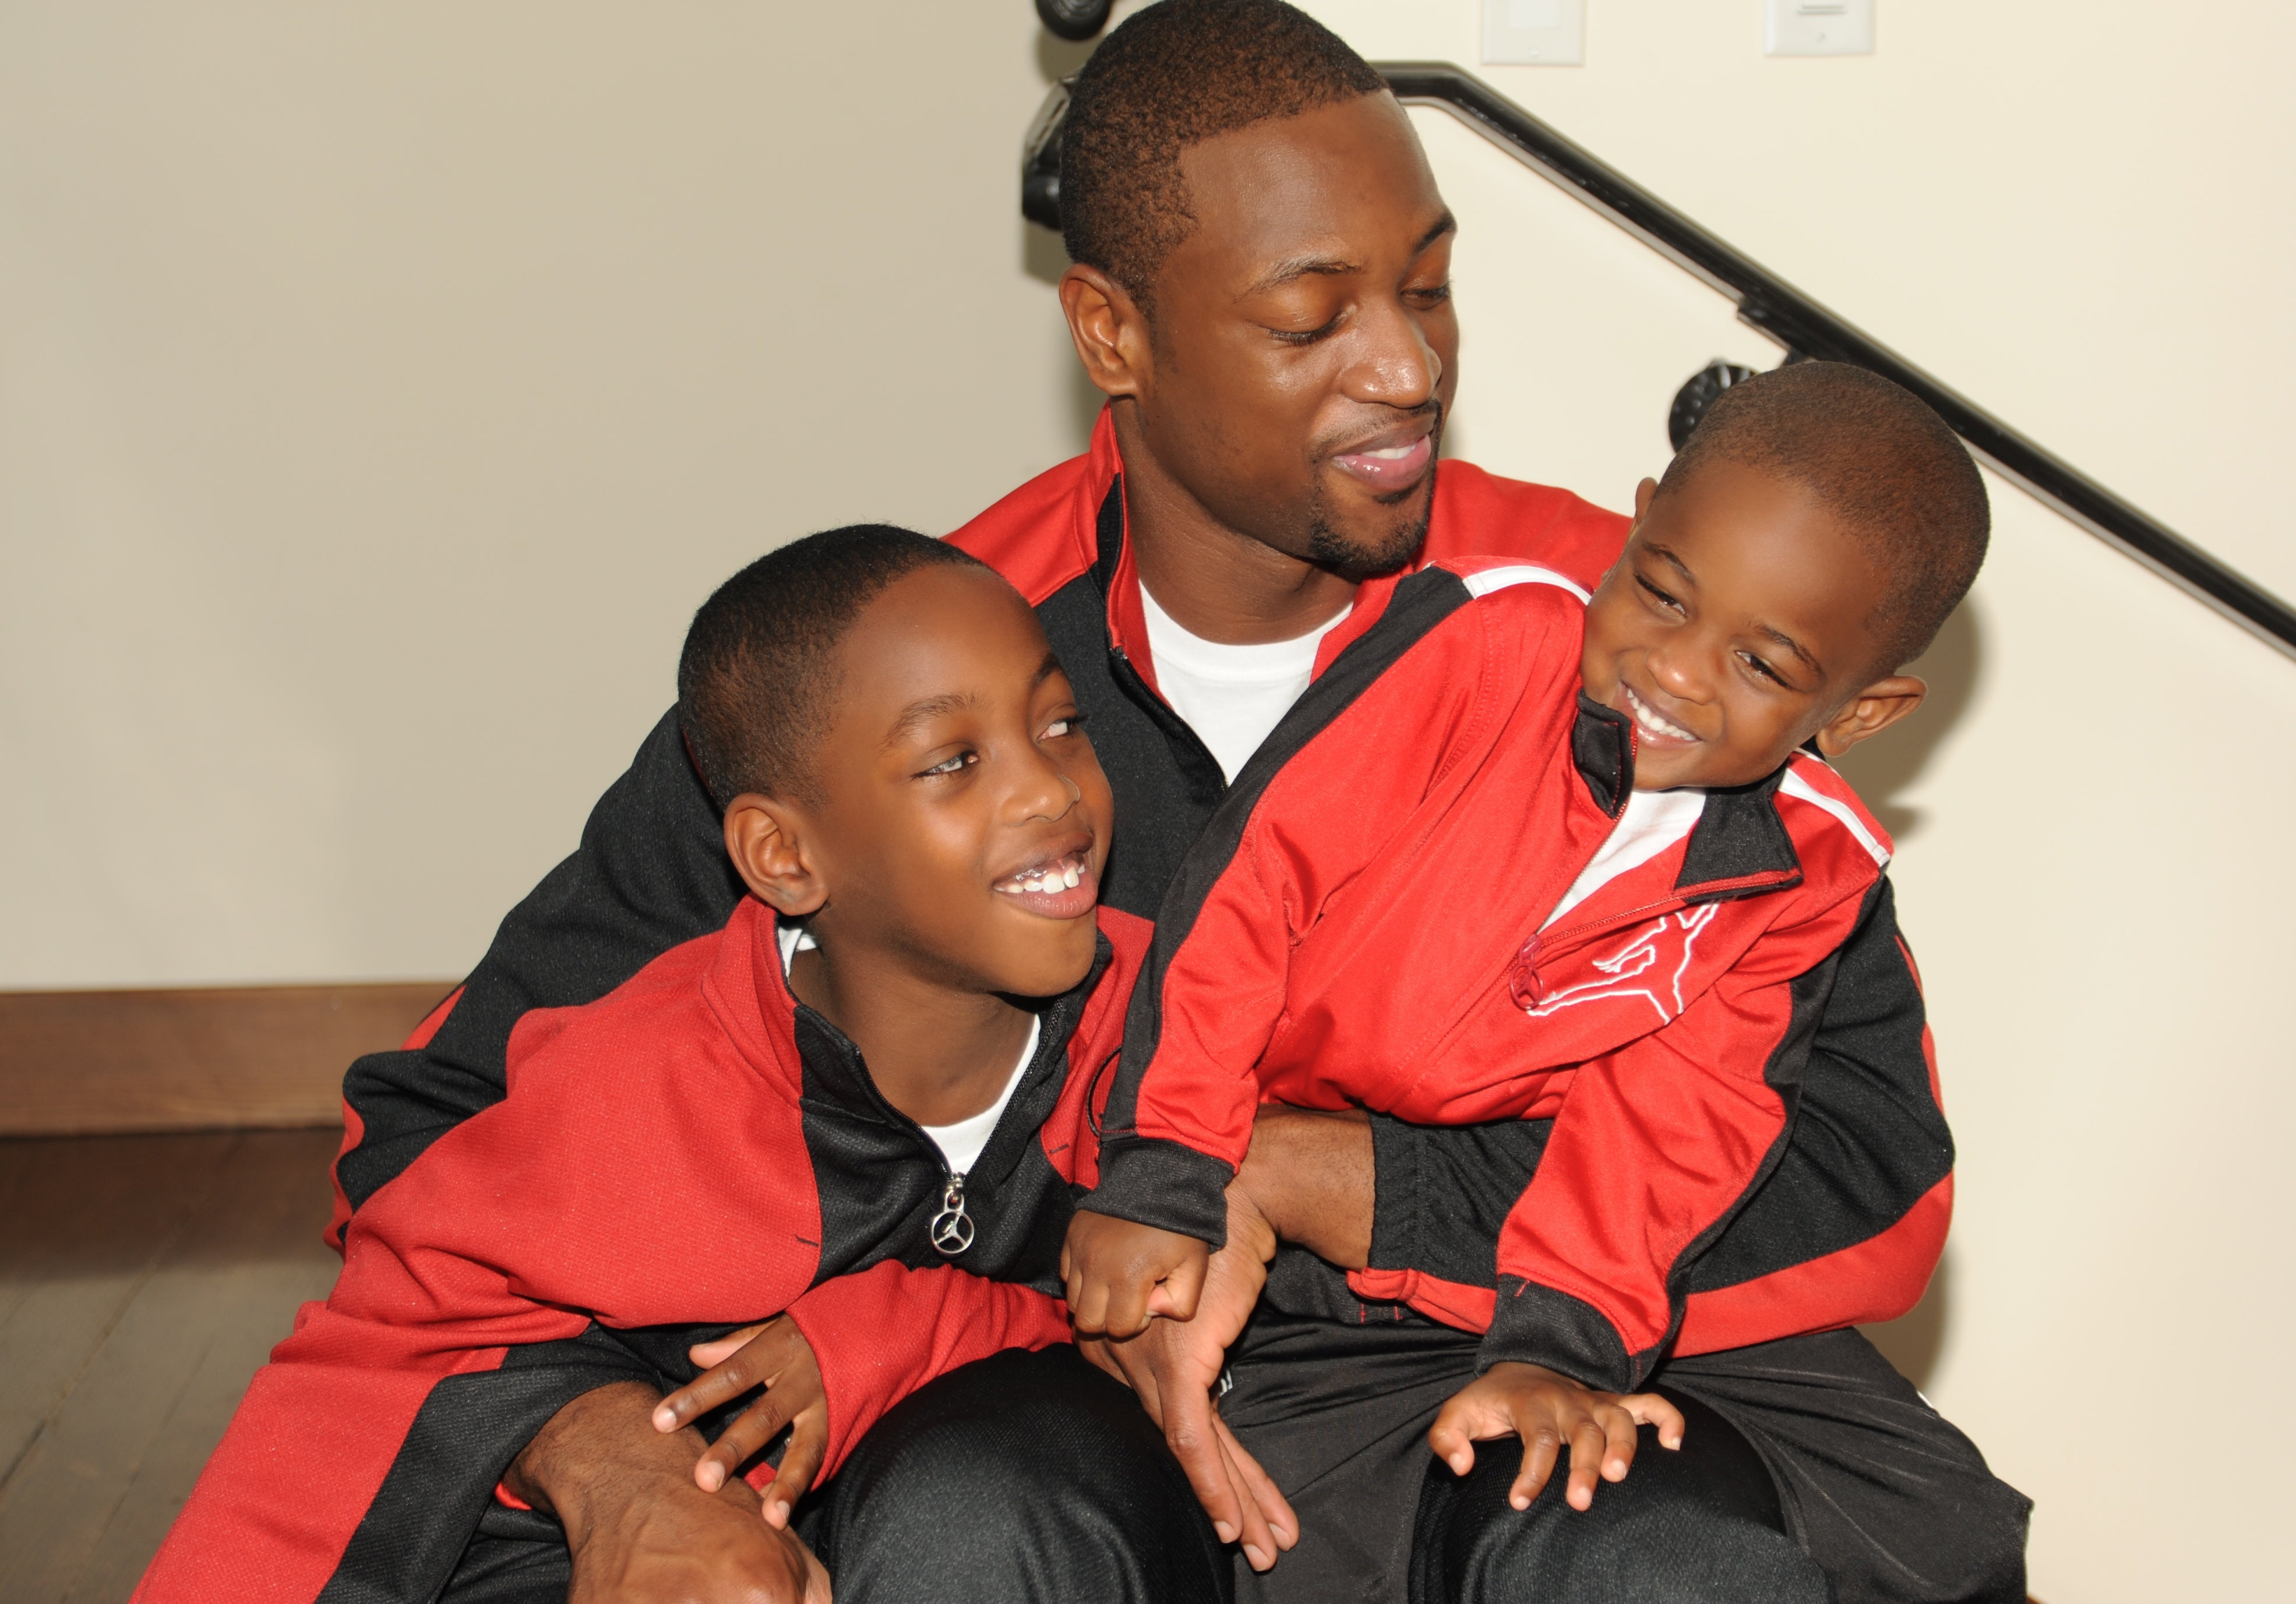 Dwyane Wade on Being a Great Father - Essence